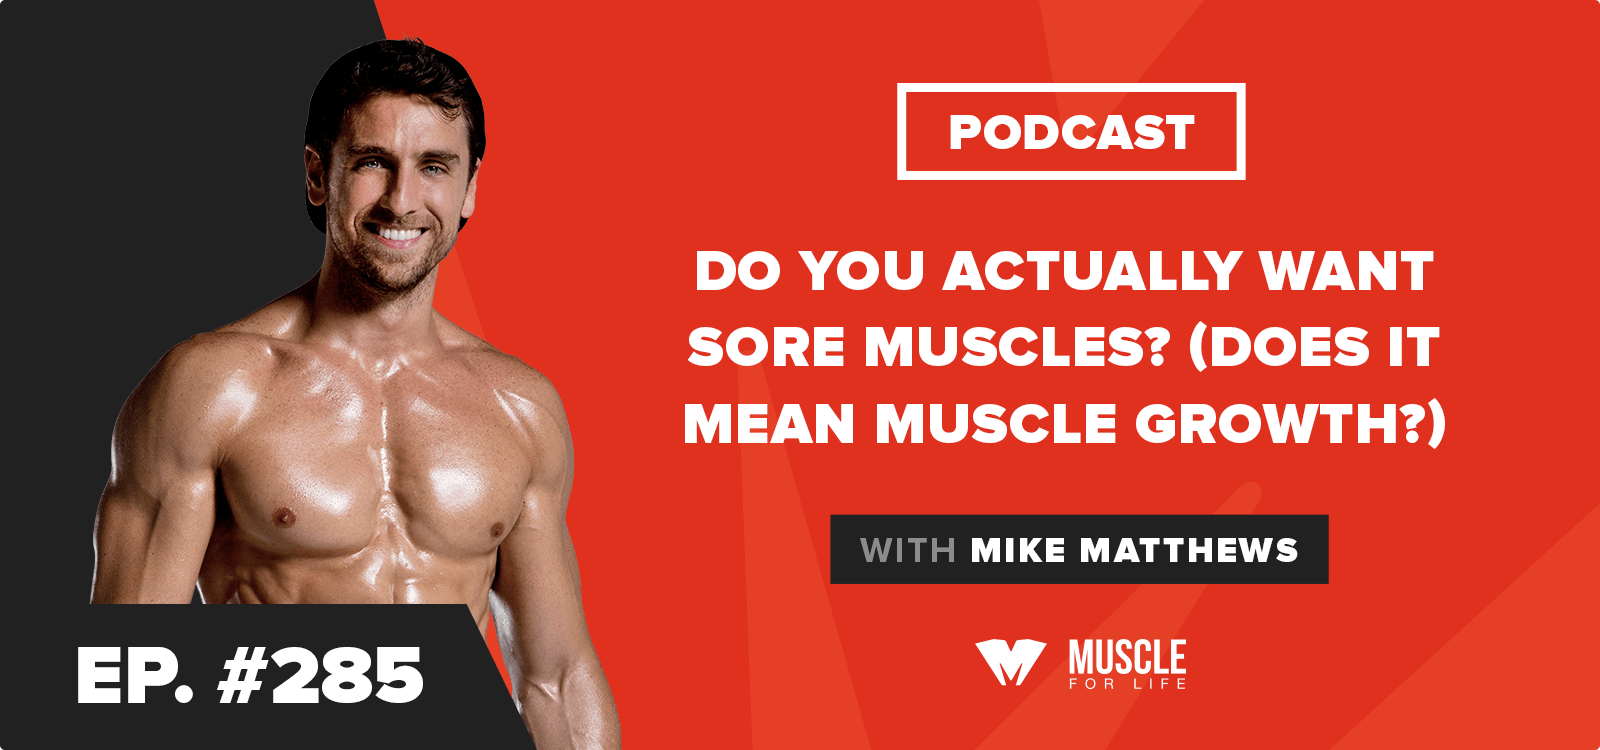 Do You Actually Want Sore Muscles? (Does It Mean Muscle Growth?)